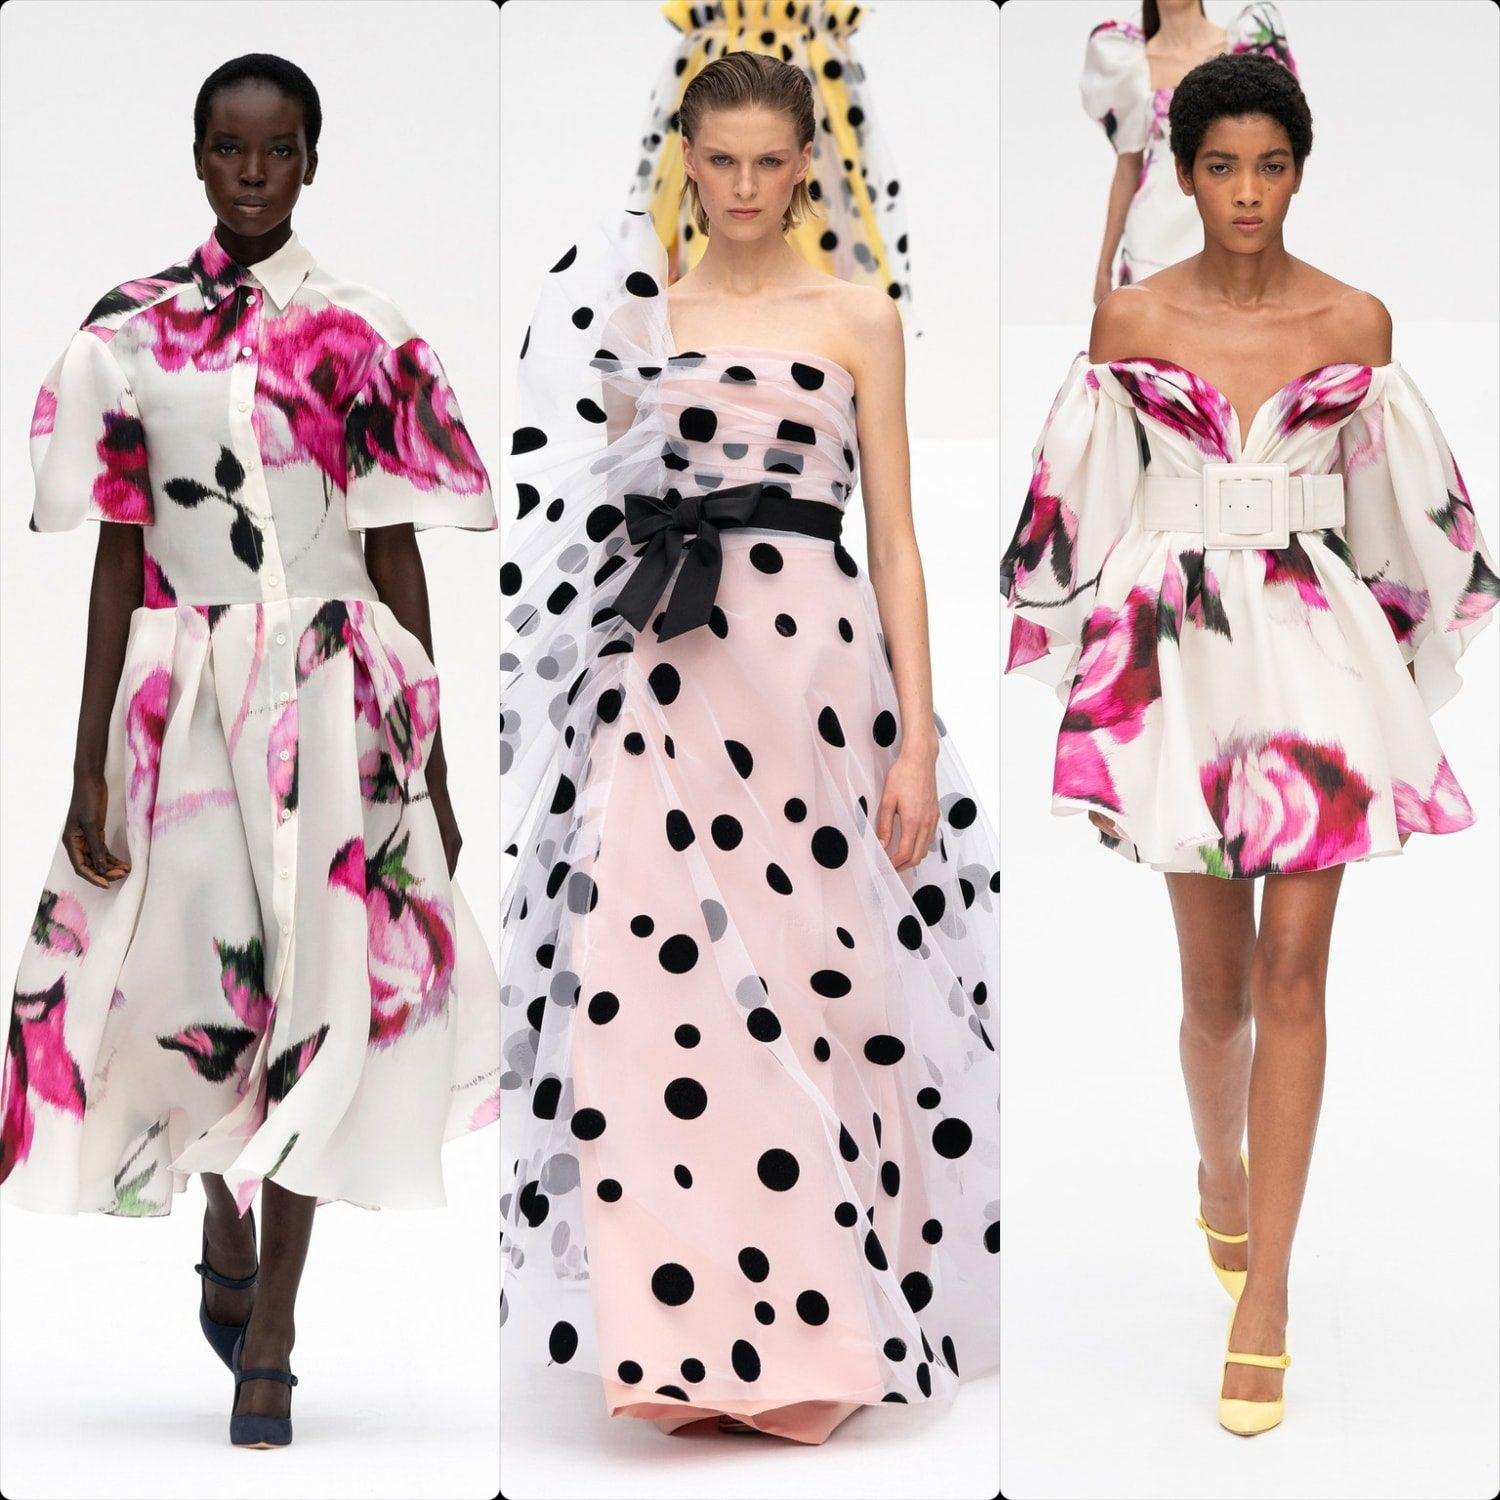 Carolina Herrera Spring Summer 2020 New York - RUNWAY MAGAZINE Collections